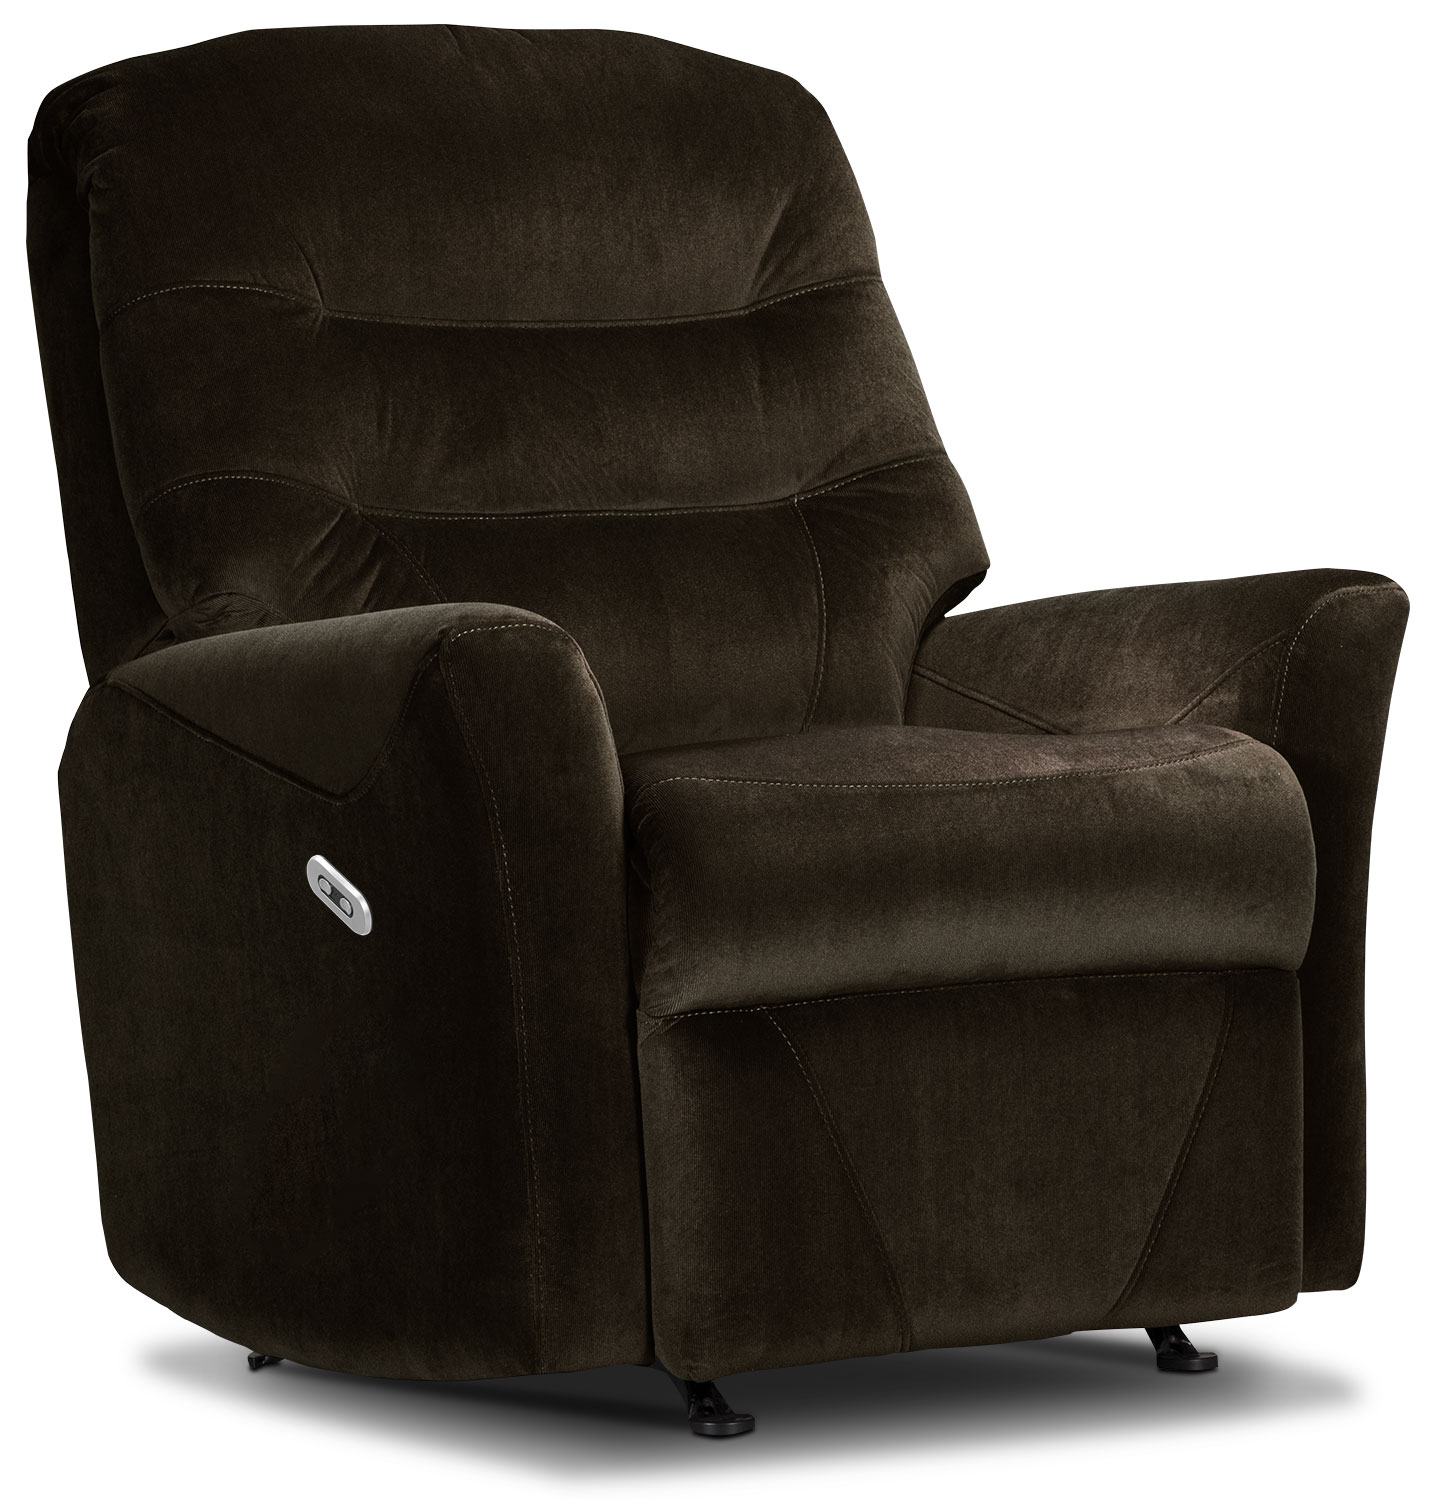 Living Room Furniture - Designed2B Recliner 4560 Microsuede Power Recliner - Chocolate